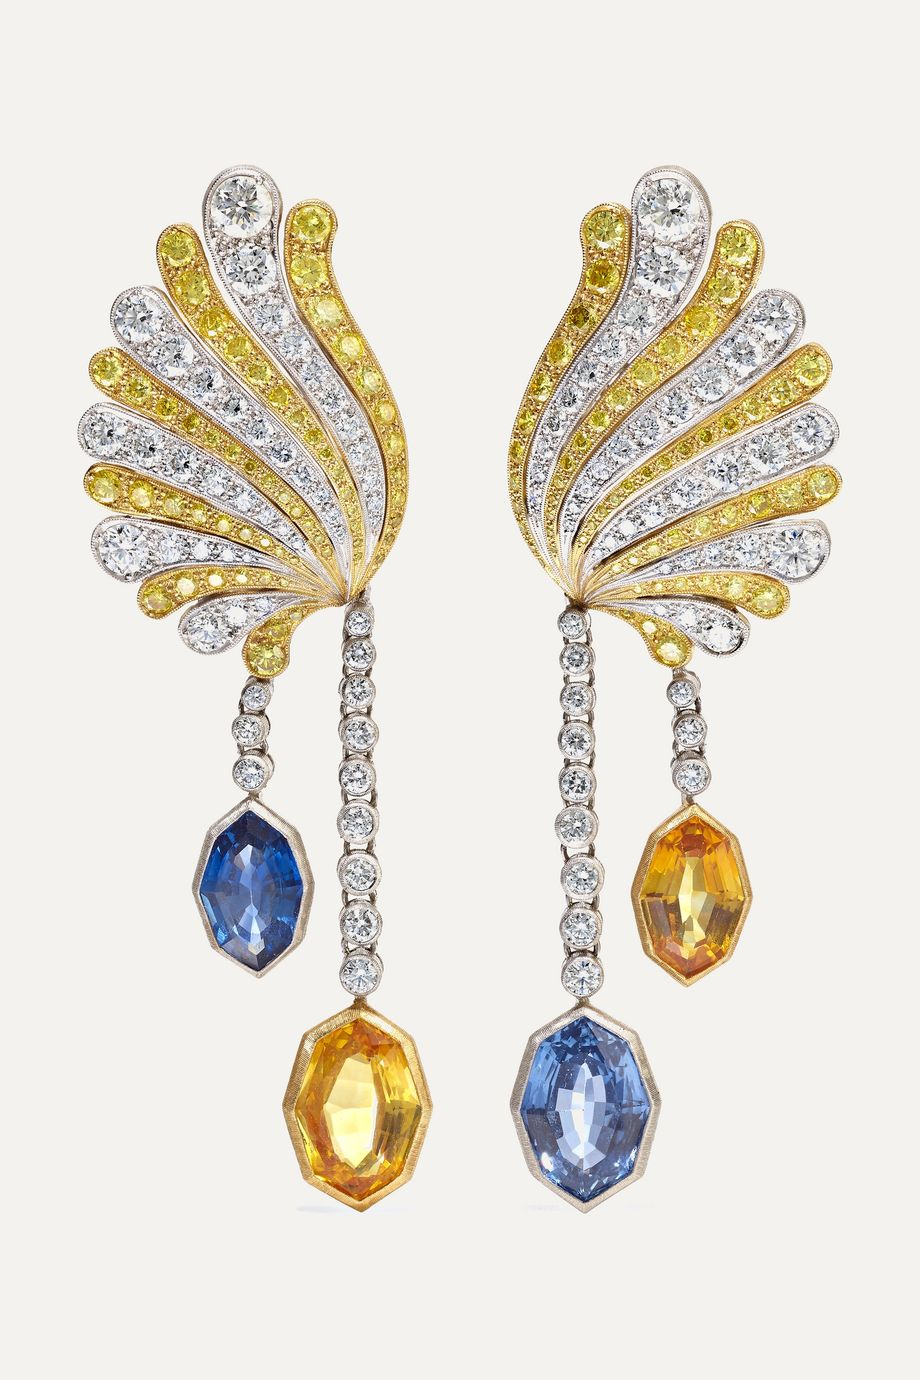 Buccellati 18-karat yellow and white gold, diamond and sapphire earrings